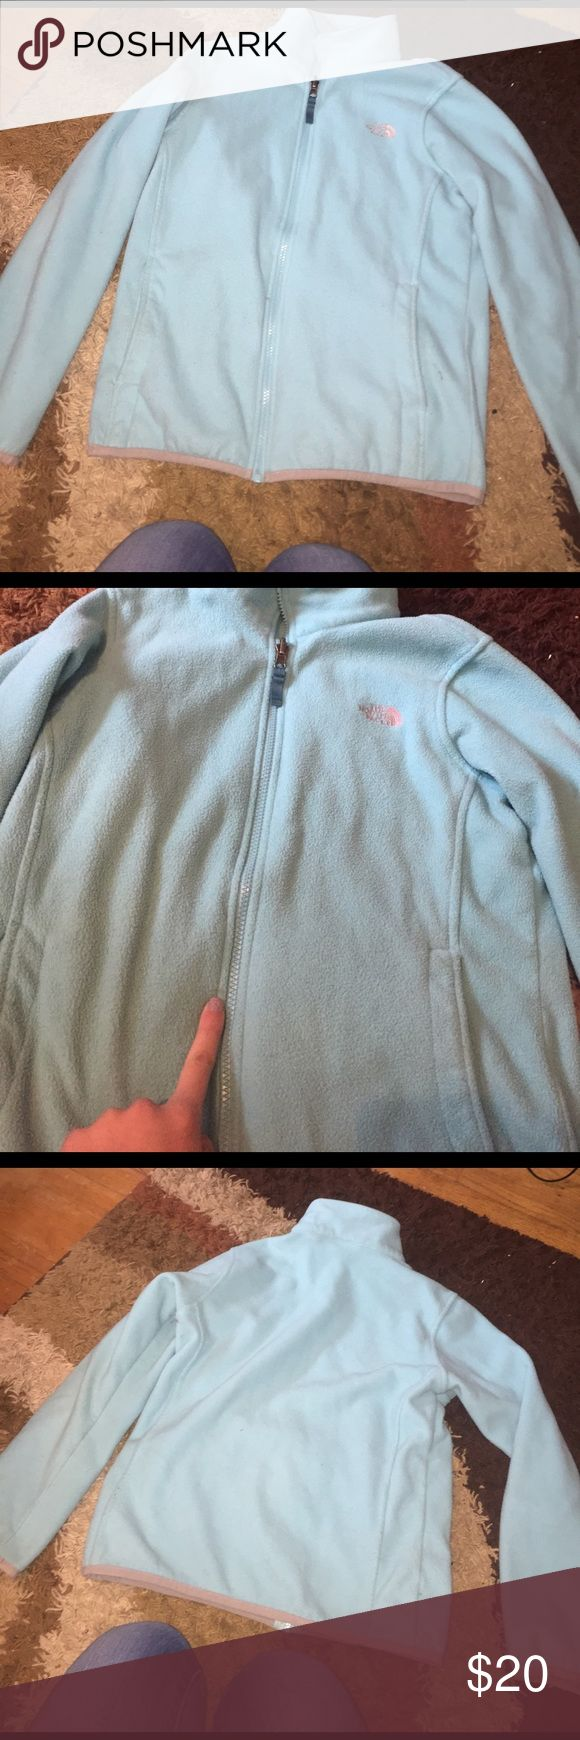 North Face Jacket North face jacket!!! In good condition , however there is a little mark that you can see in the picture , price reflect on it. It is a kids L (14/16)! It is still rather big but I'm now to tall for it. If you have any questions about sizing feel free to ask! The North Face Jackets & Coats